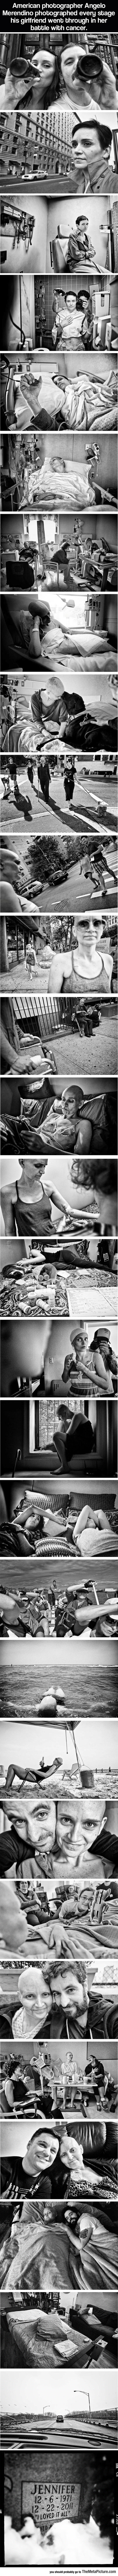 photographer-girlfriend-battle-cancer-before-after